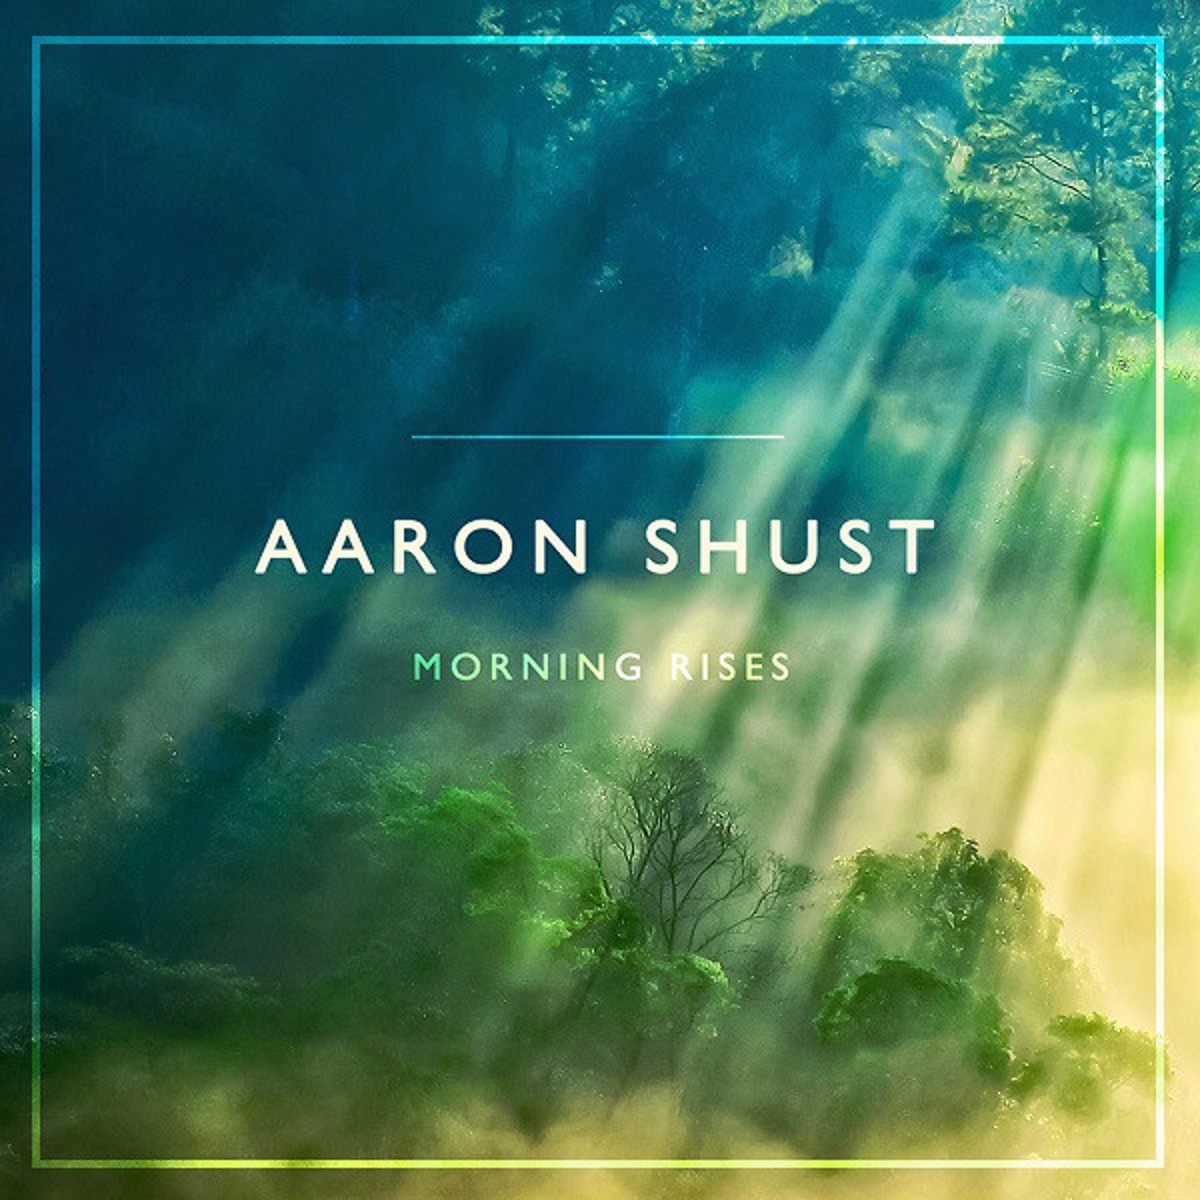 aaron shust Morning Rises